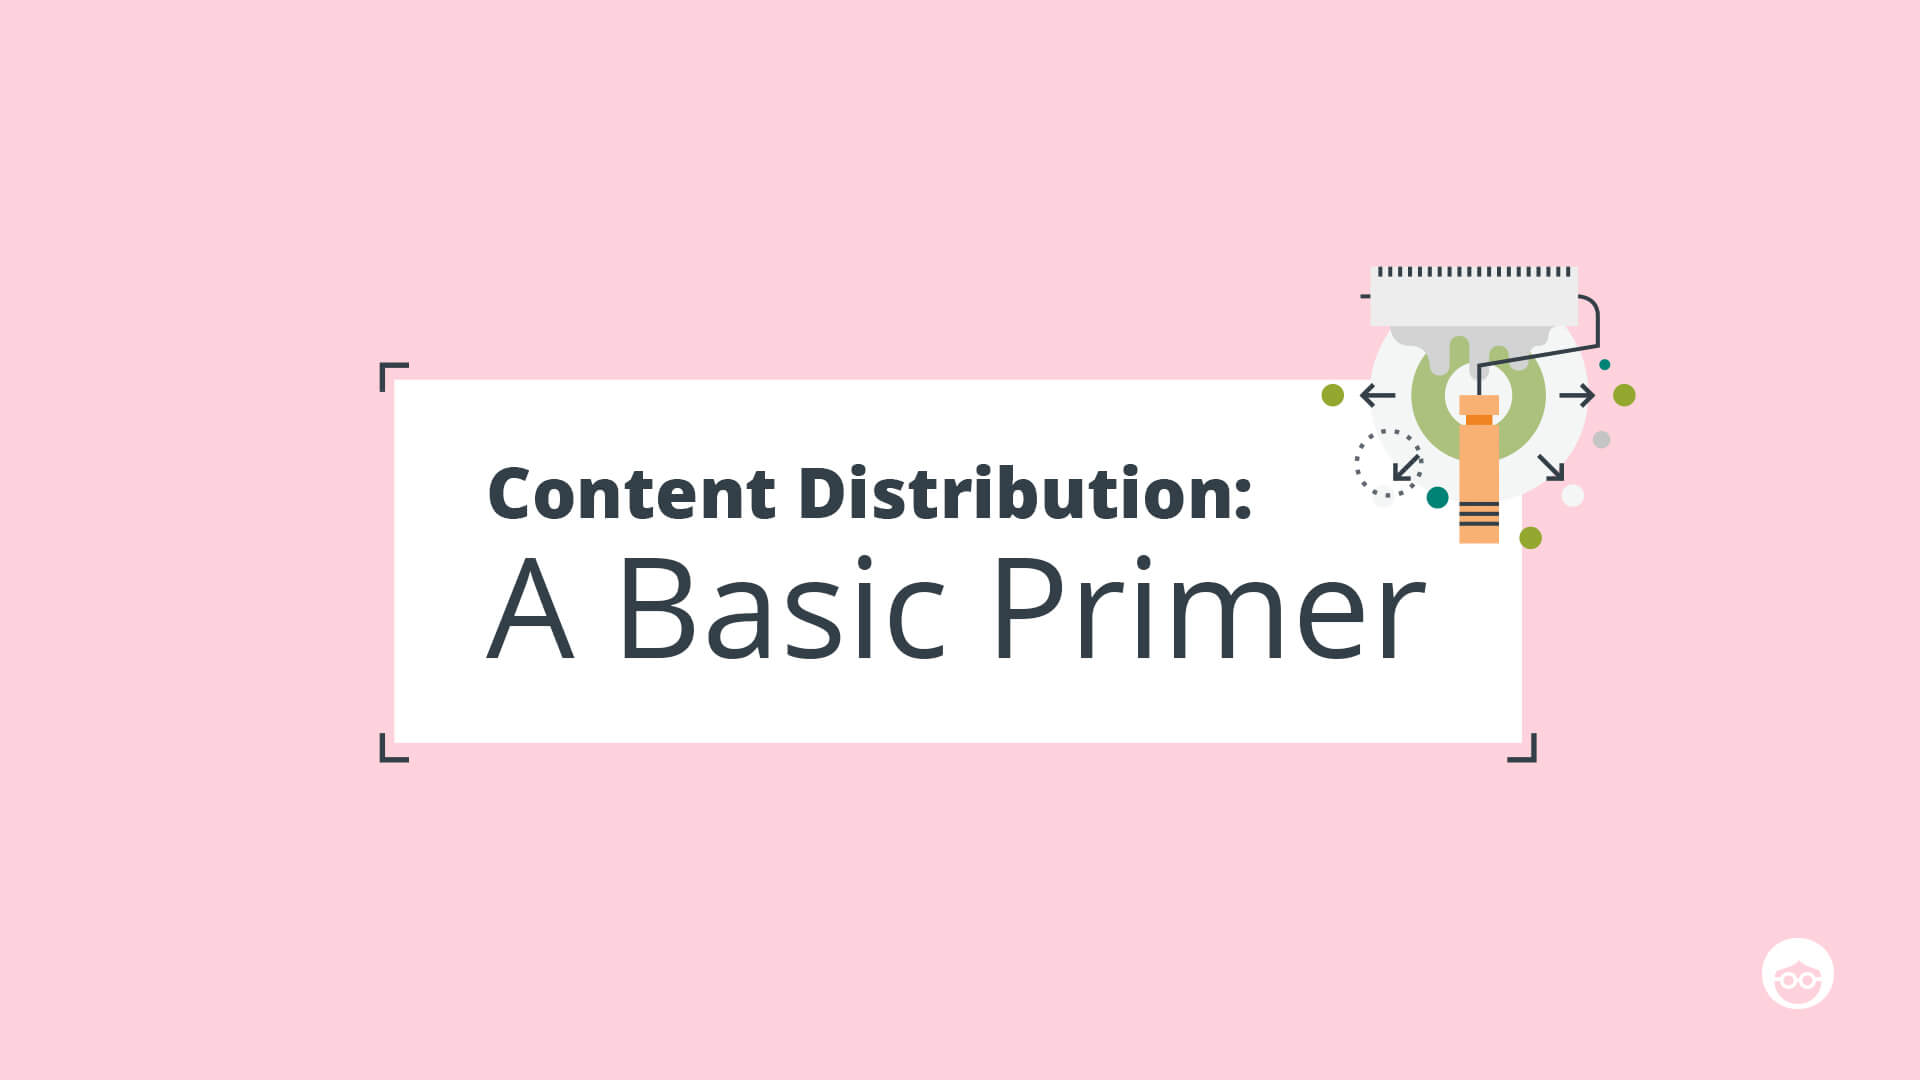 Content-Distribution-Basic-Primer.jpg